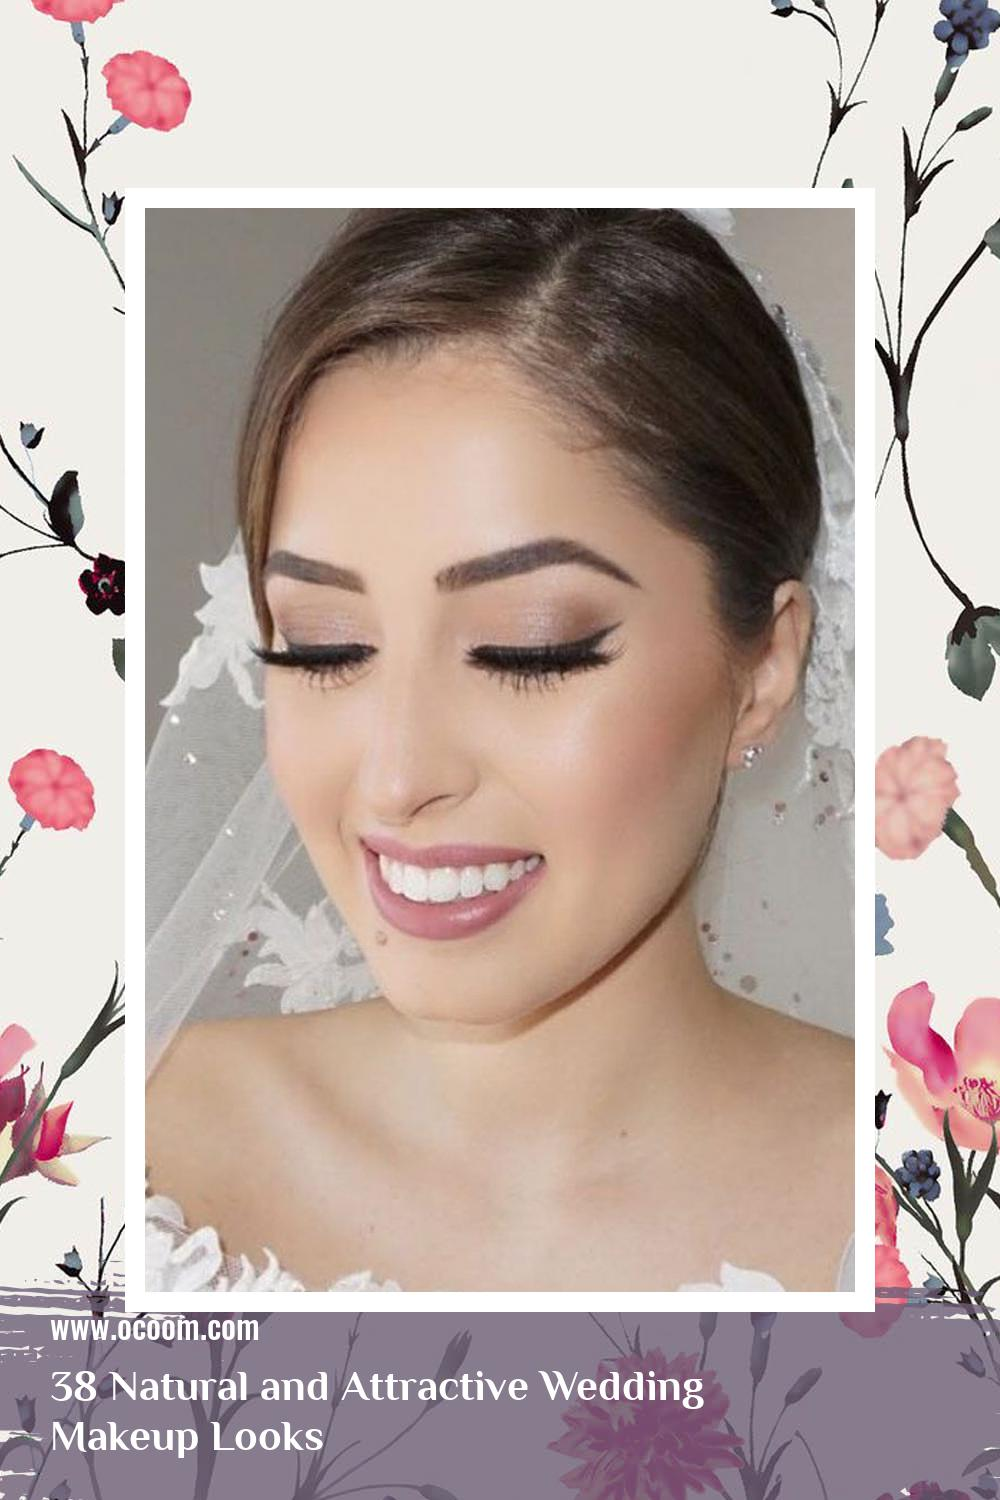 38 Natural and Attractive Wedding Makeup Looks 26